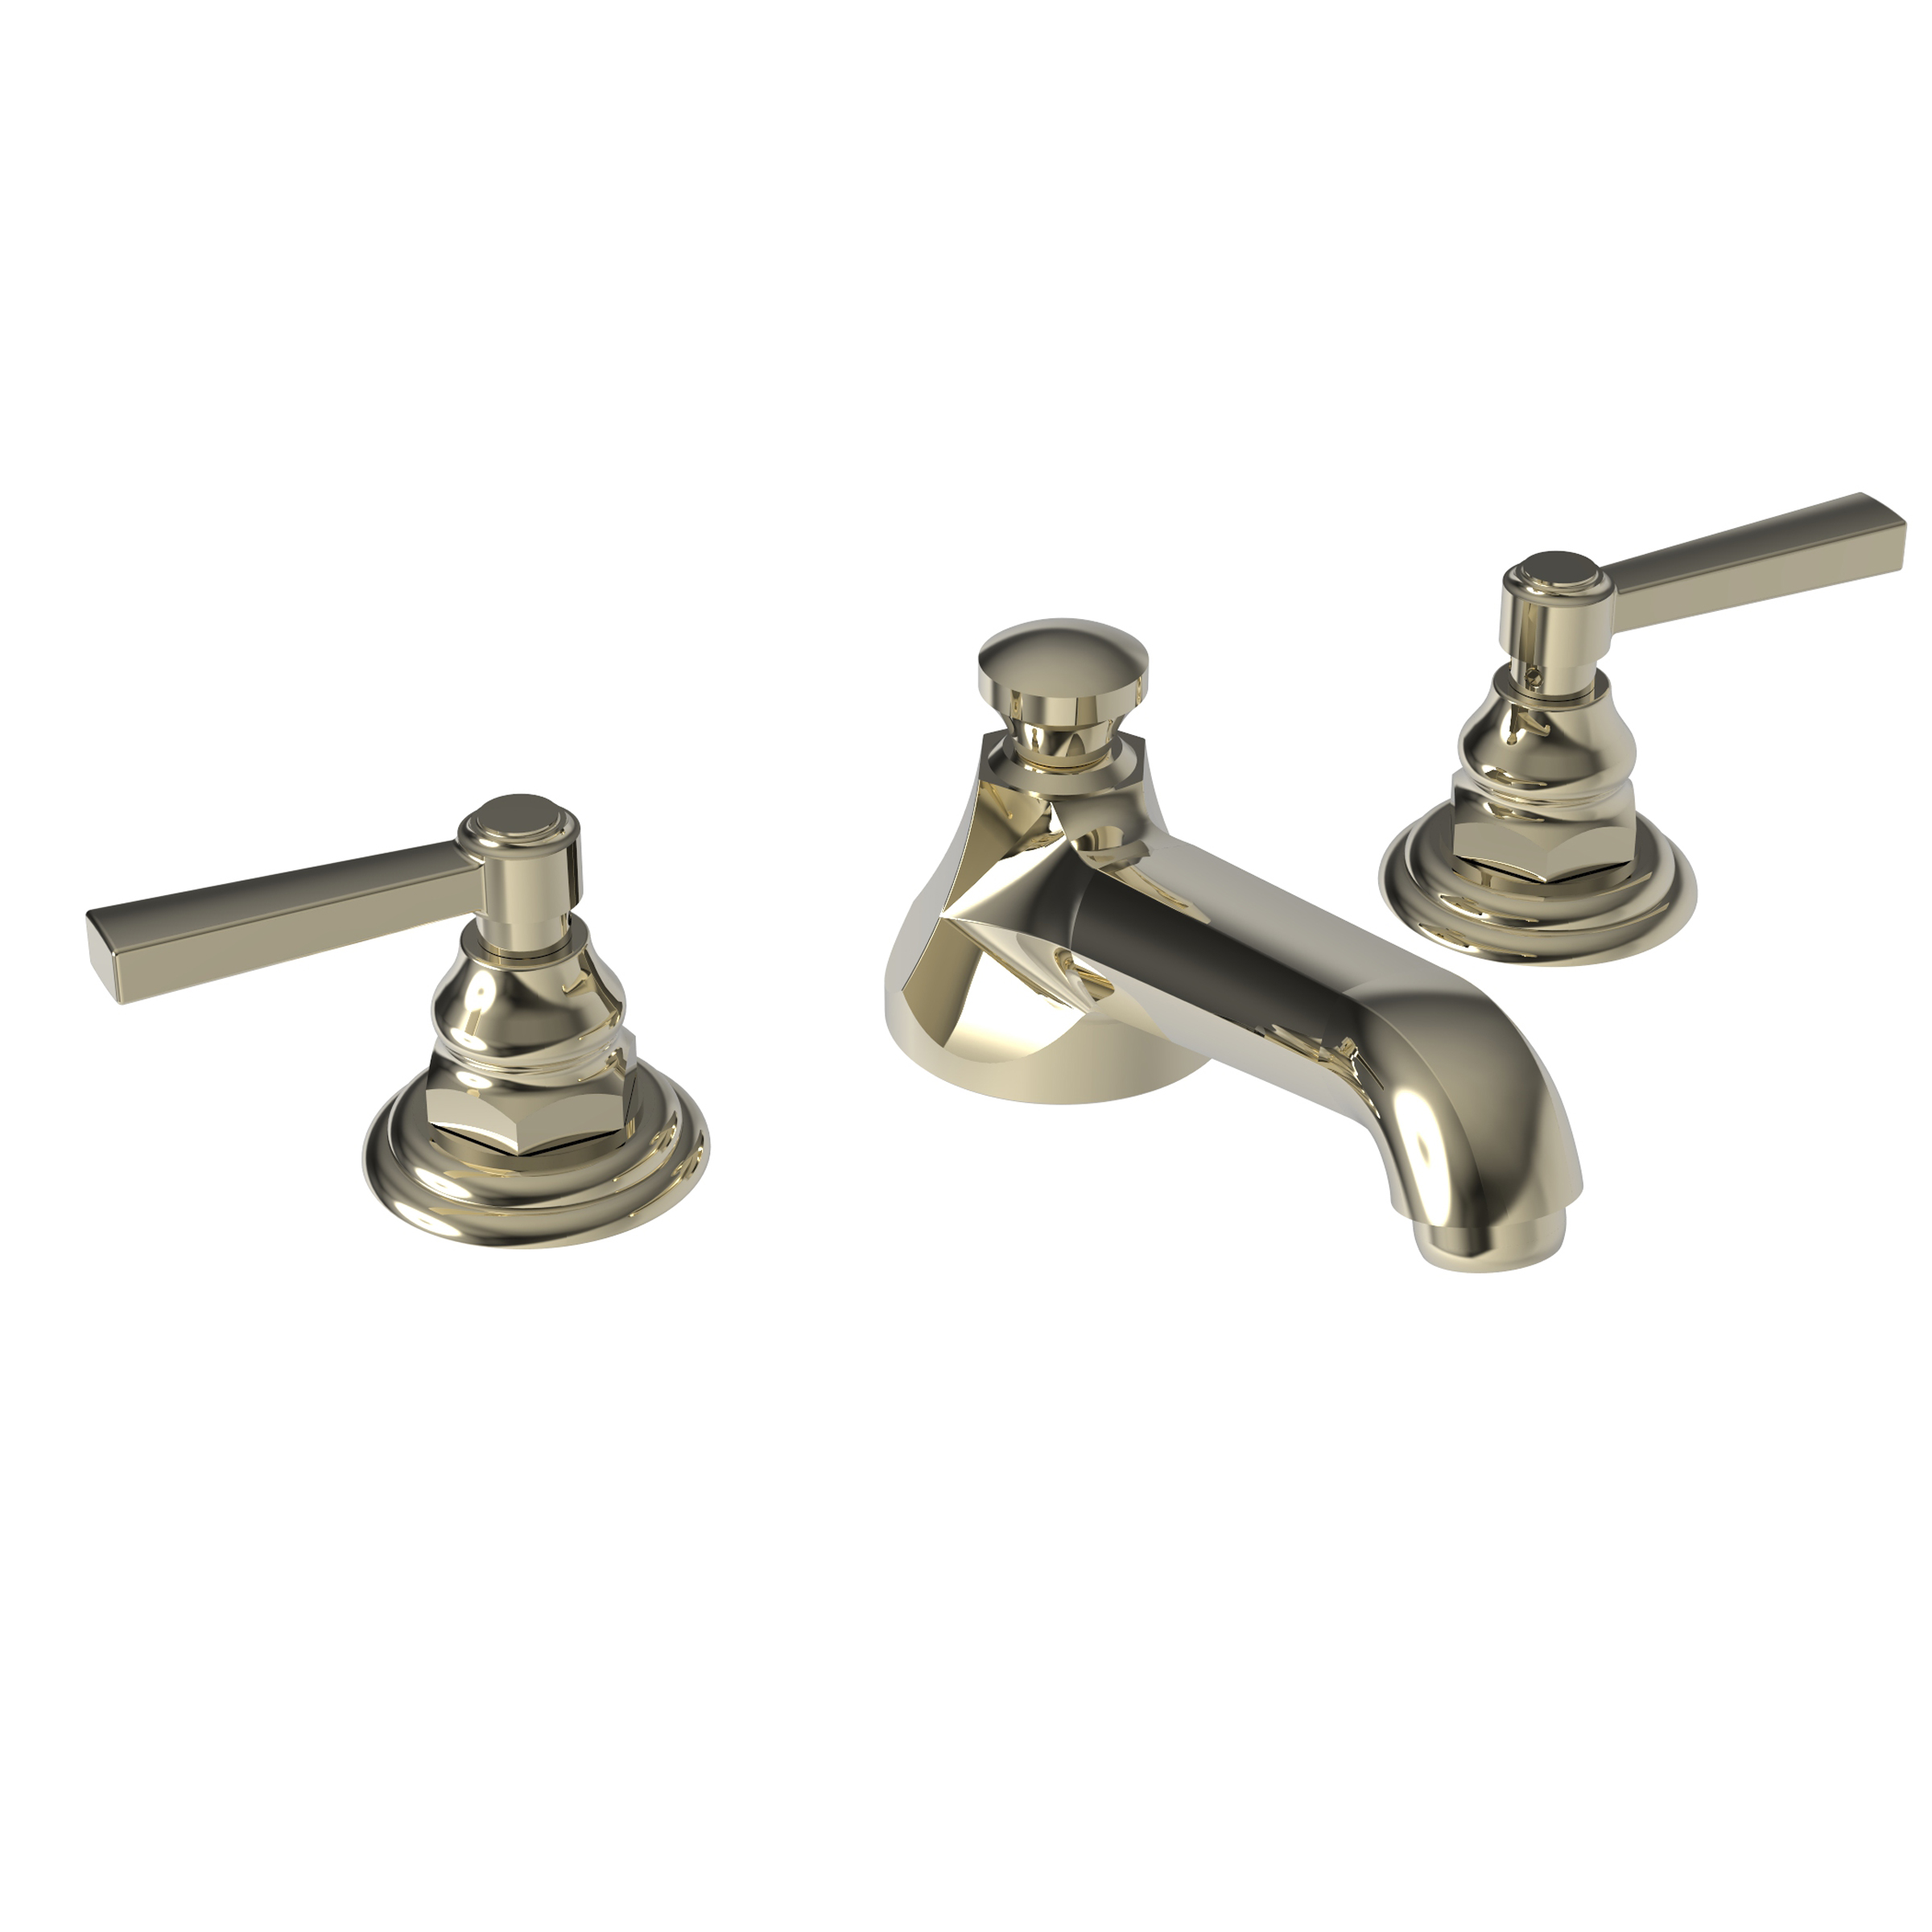 Newport Brass 910 Astor 910 Widespread Lavatory Faucet Newport Brass Faucets